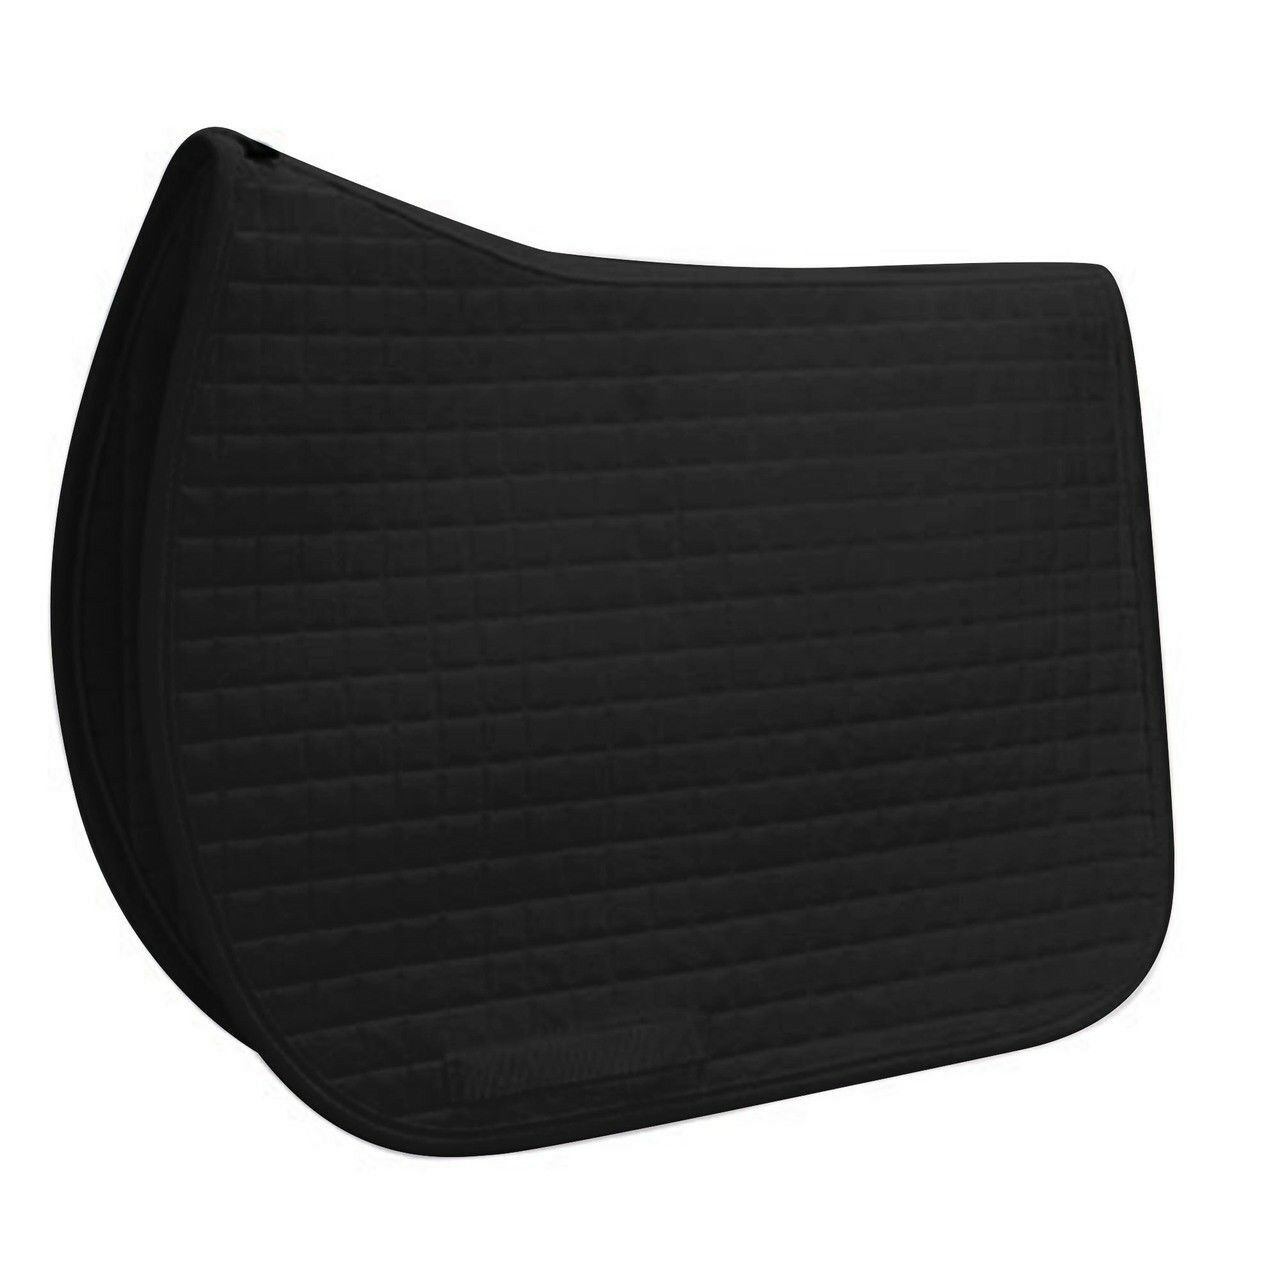 T3 Matrix Ergonomic Dressage Show  Liner Saddle Pad 1  Square Quilted  high quaity